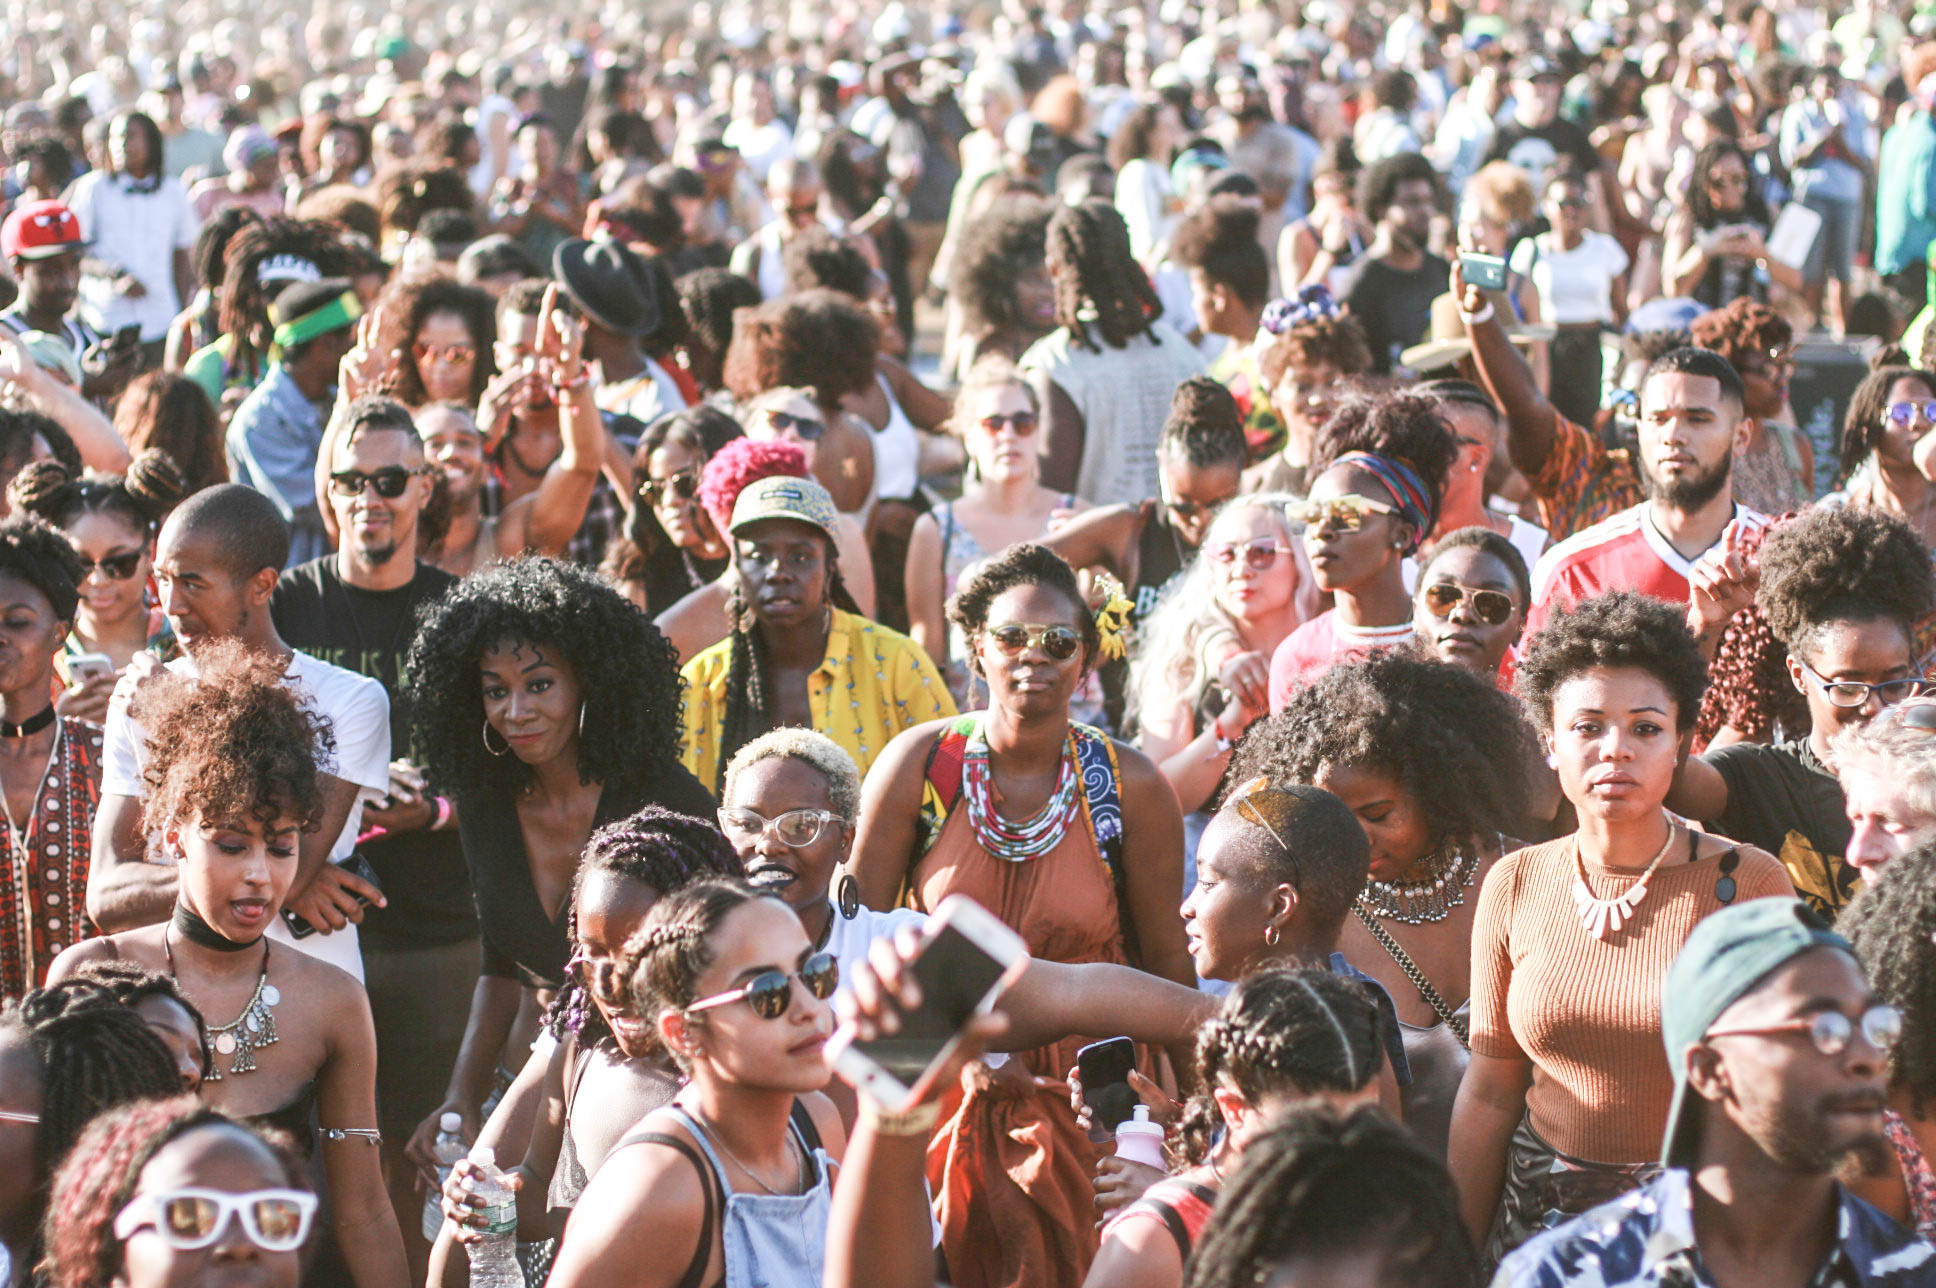 Crowd at #afropunkfest during @djmoma set.